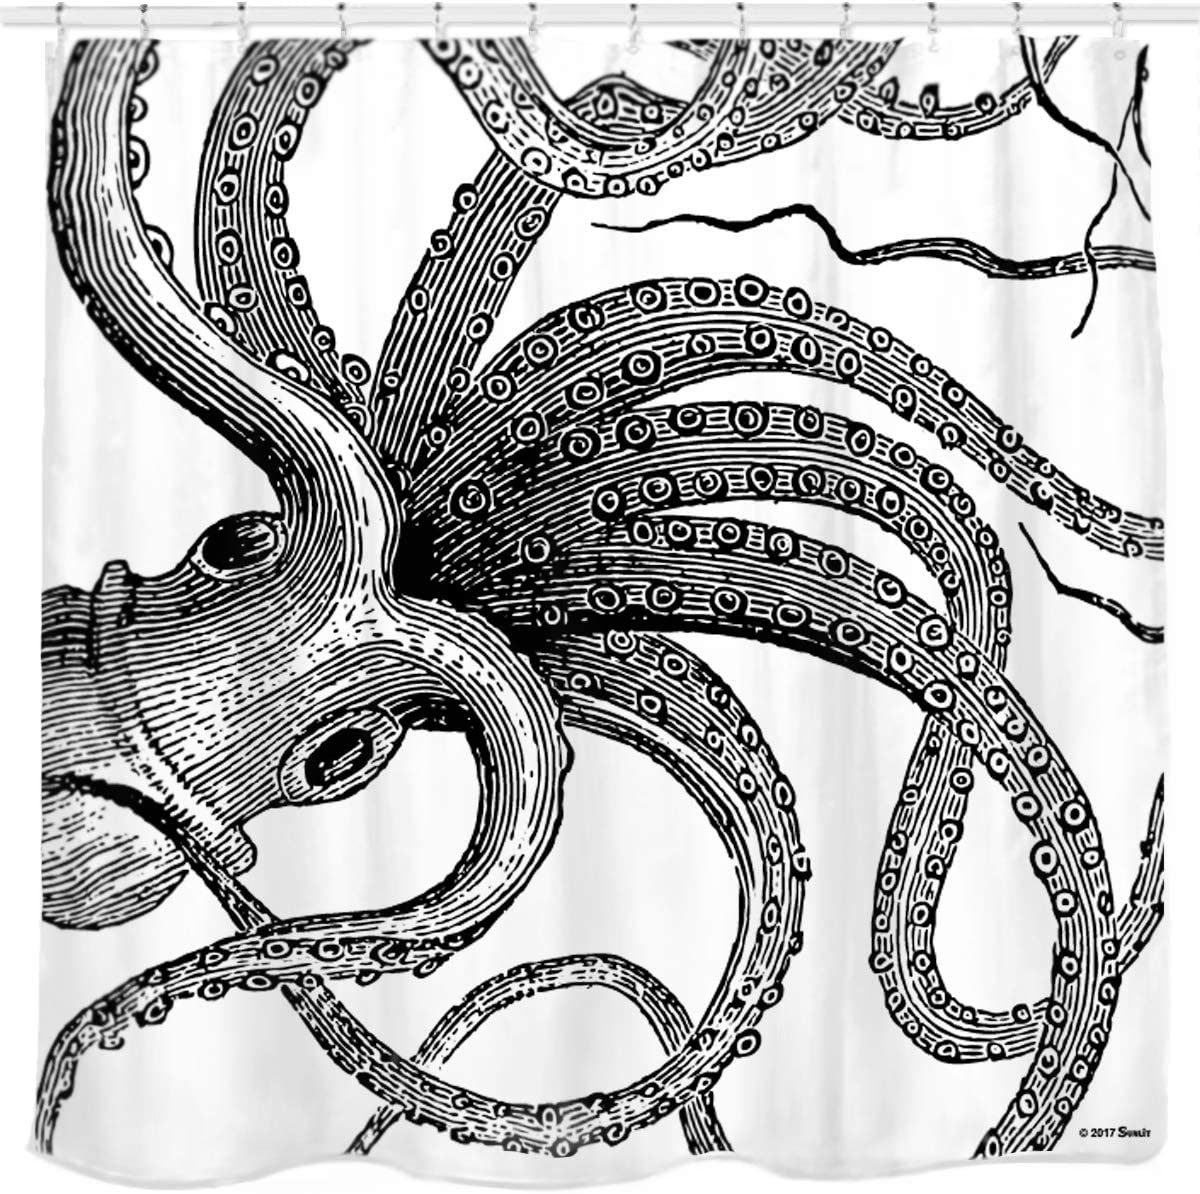 Sunlit Designer Kraken Ocean Theme Giant Octopus Tentacles Fabric Shower Curtain Mythical Nautical Sea Monster Marine Life Abstract Illustration Monochrome Black and White